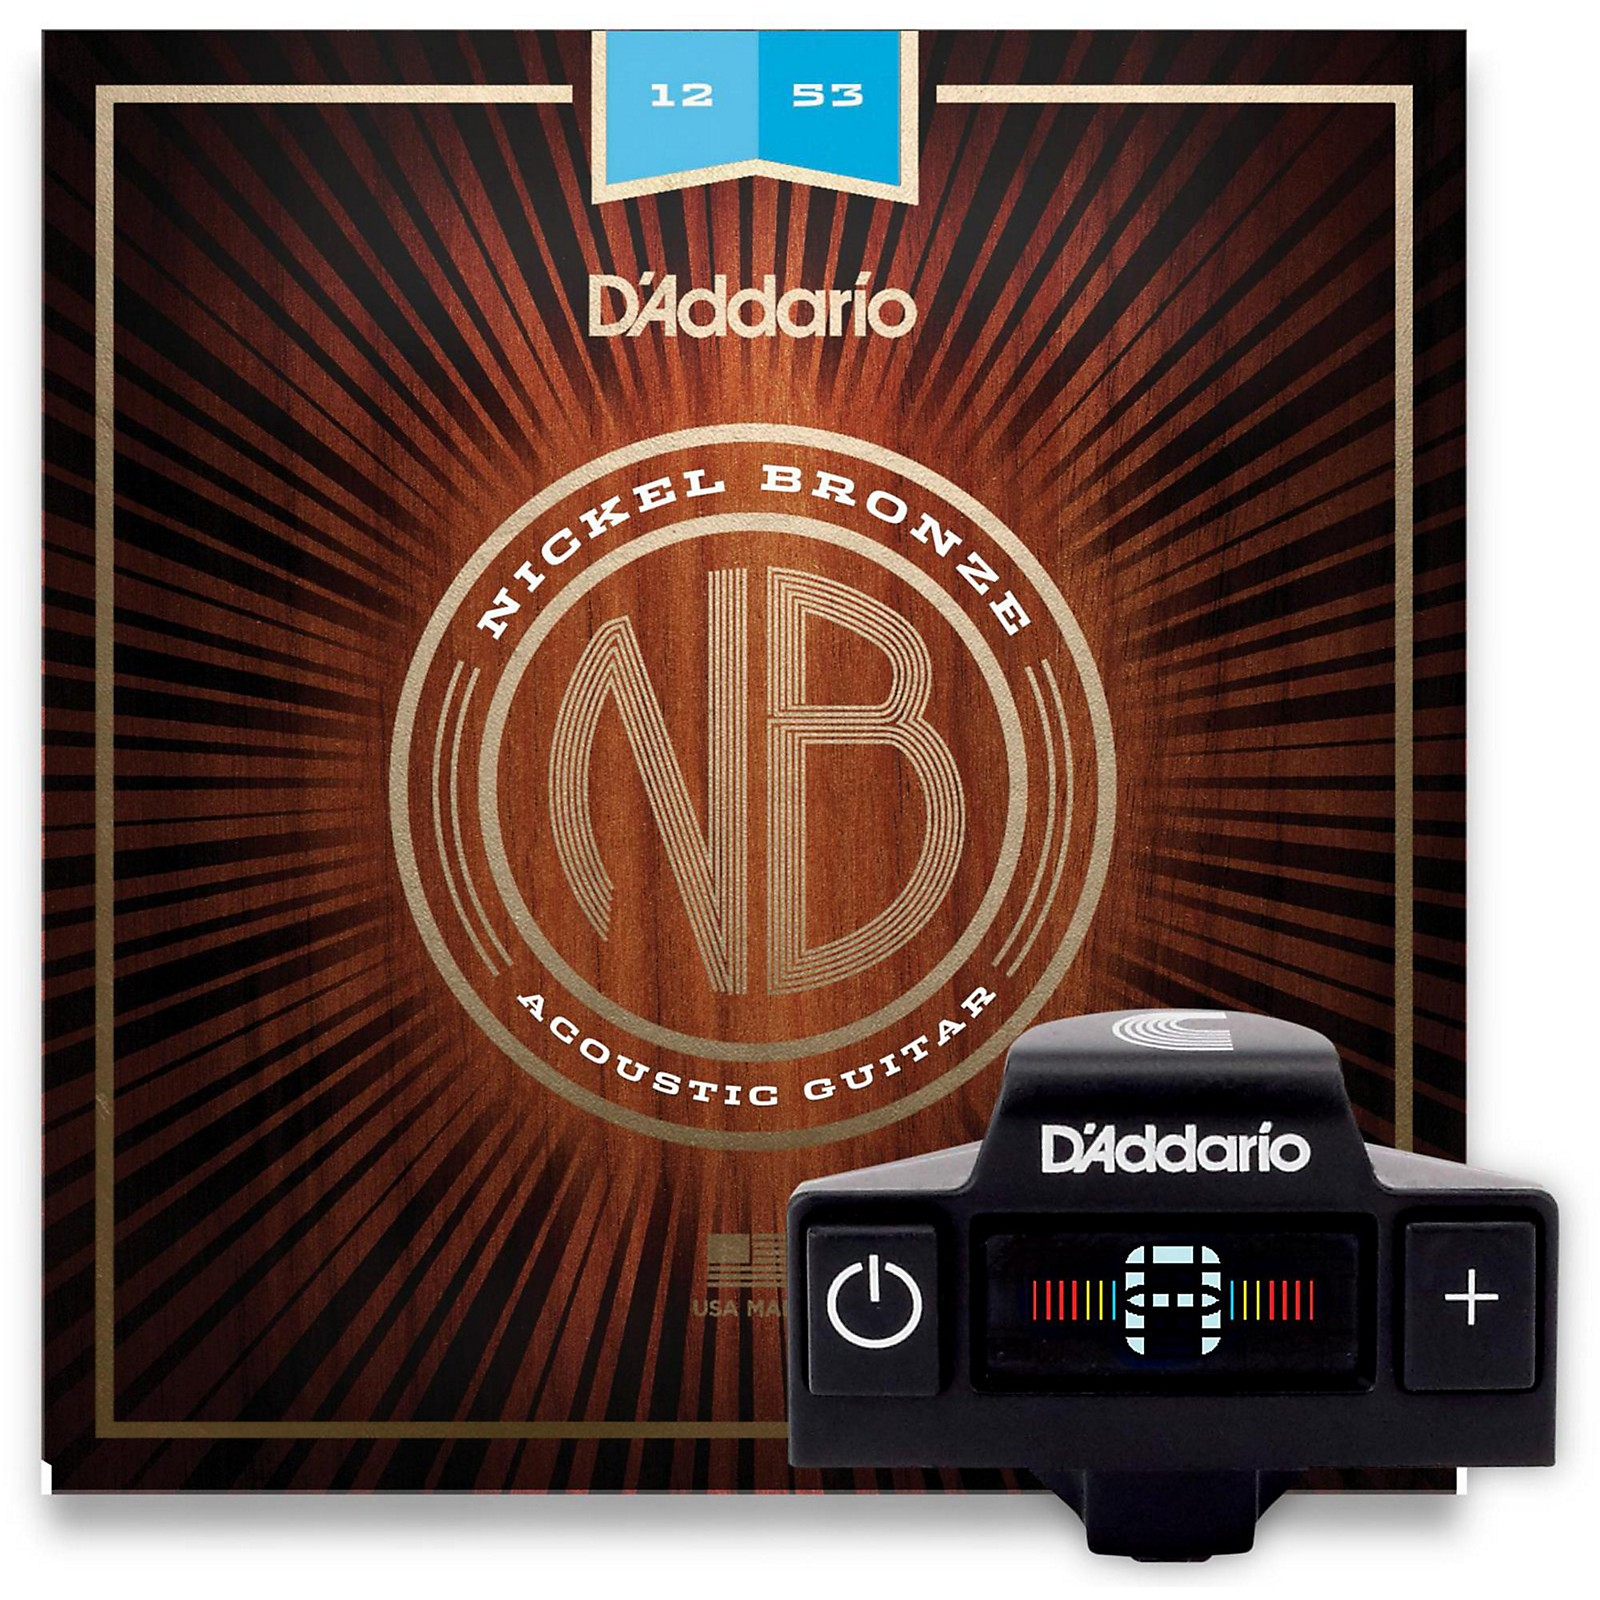 D'Addario NB1253 Nickel Bronze Light 3-Pack Acoustic Strings and NS Micro Soundhole Tuner w/ Color Screen